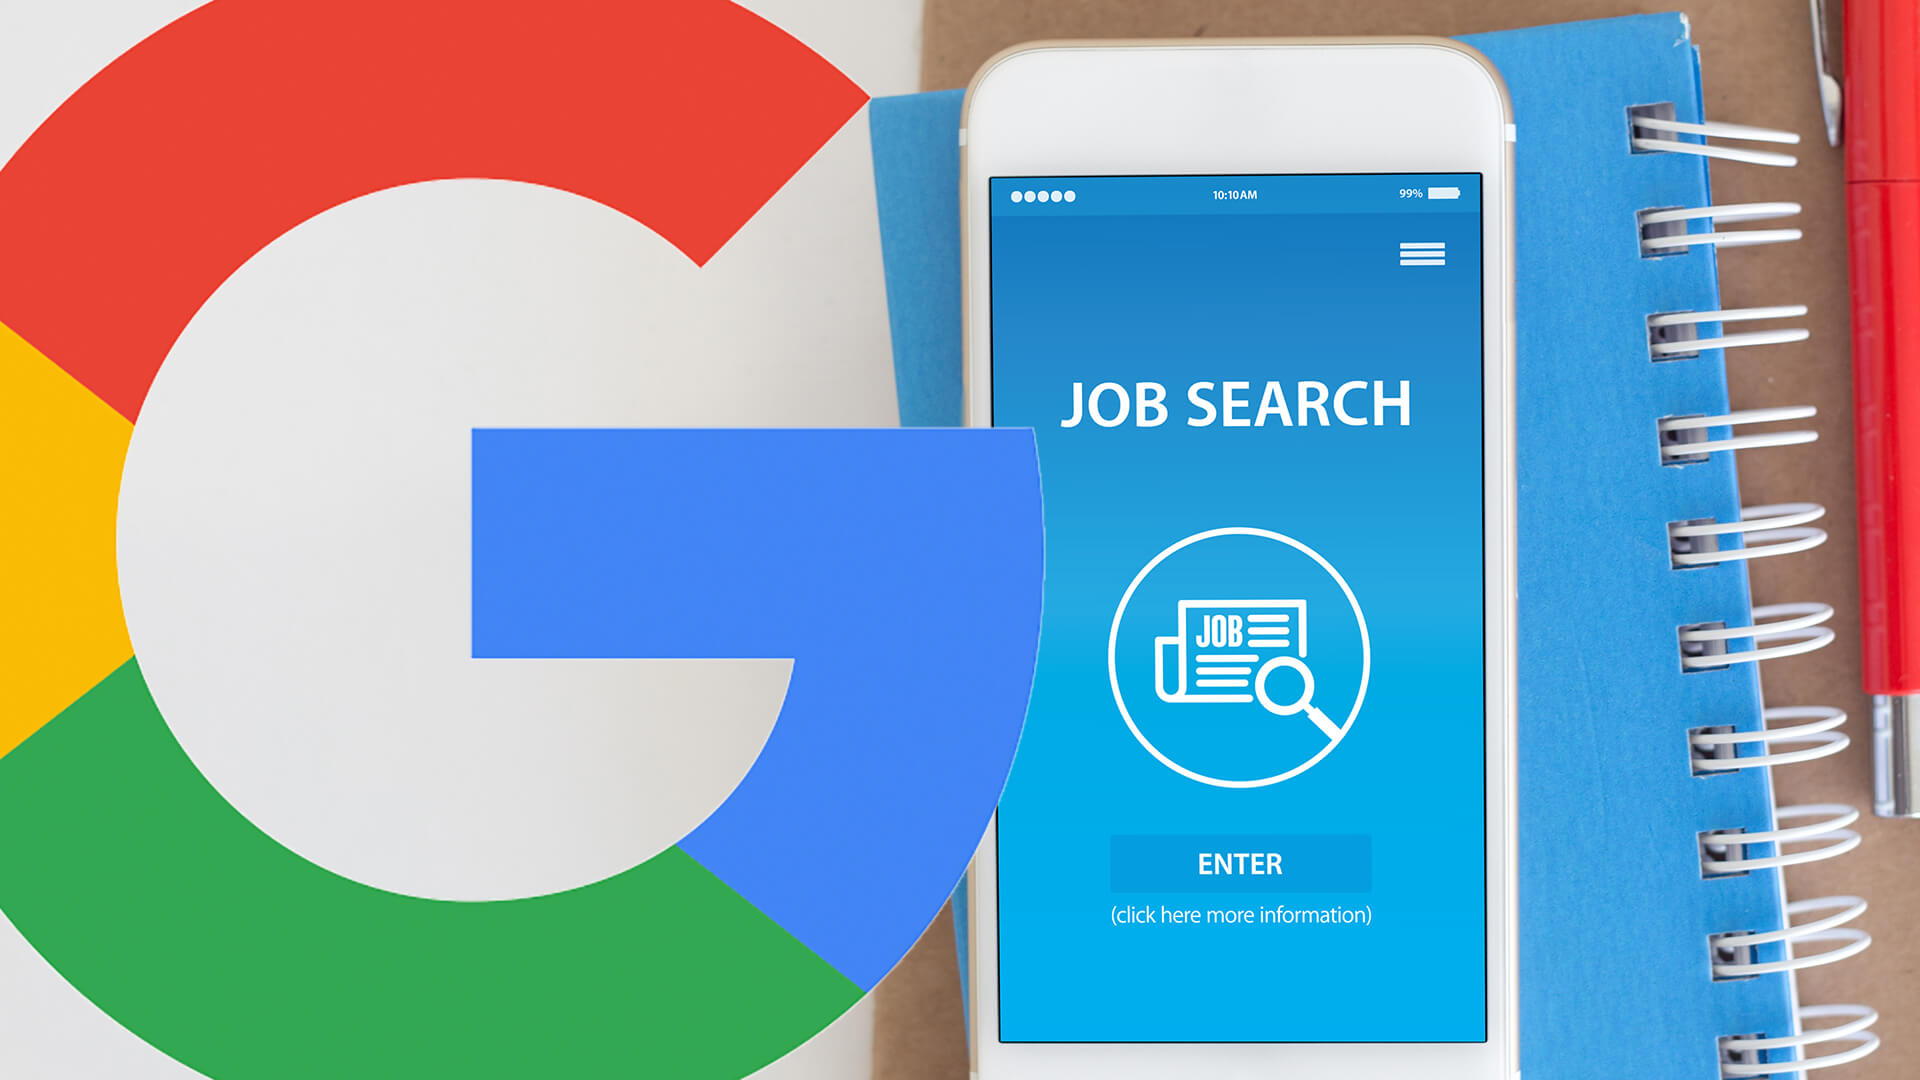 google-job-search-mobile-ss-1920.jpg